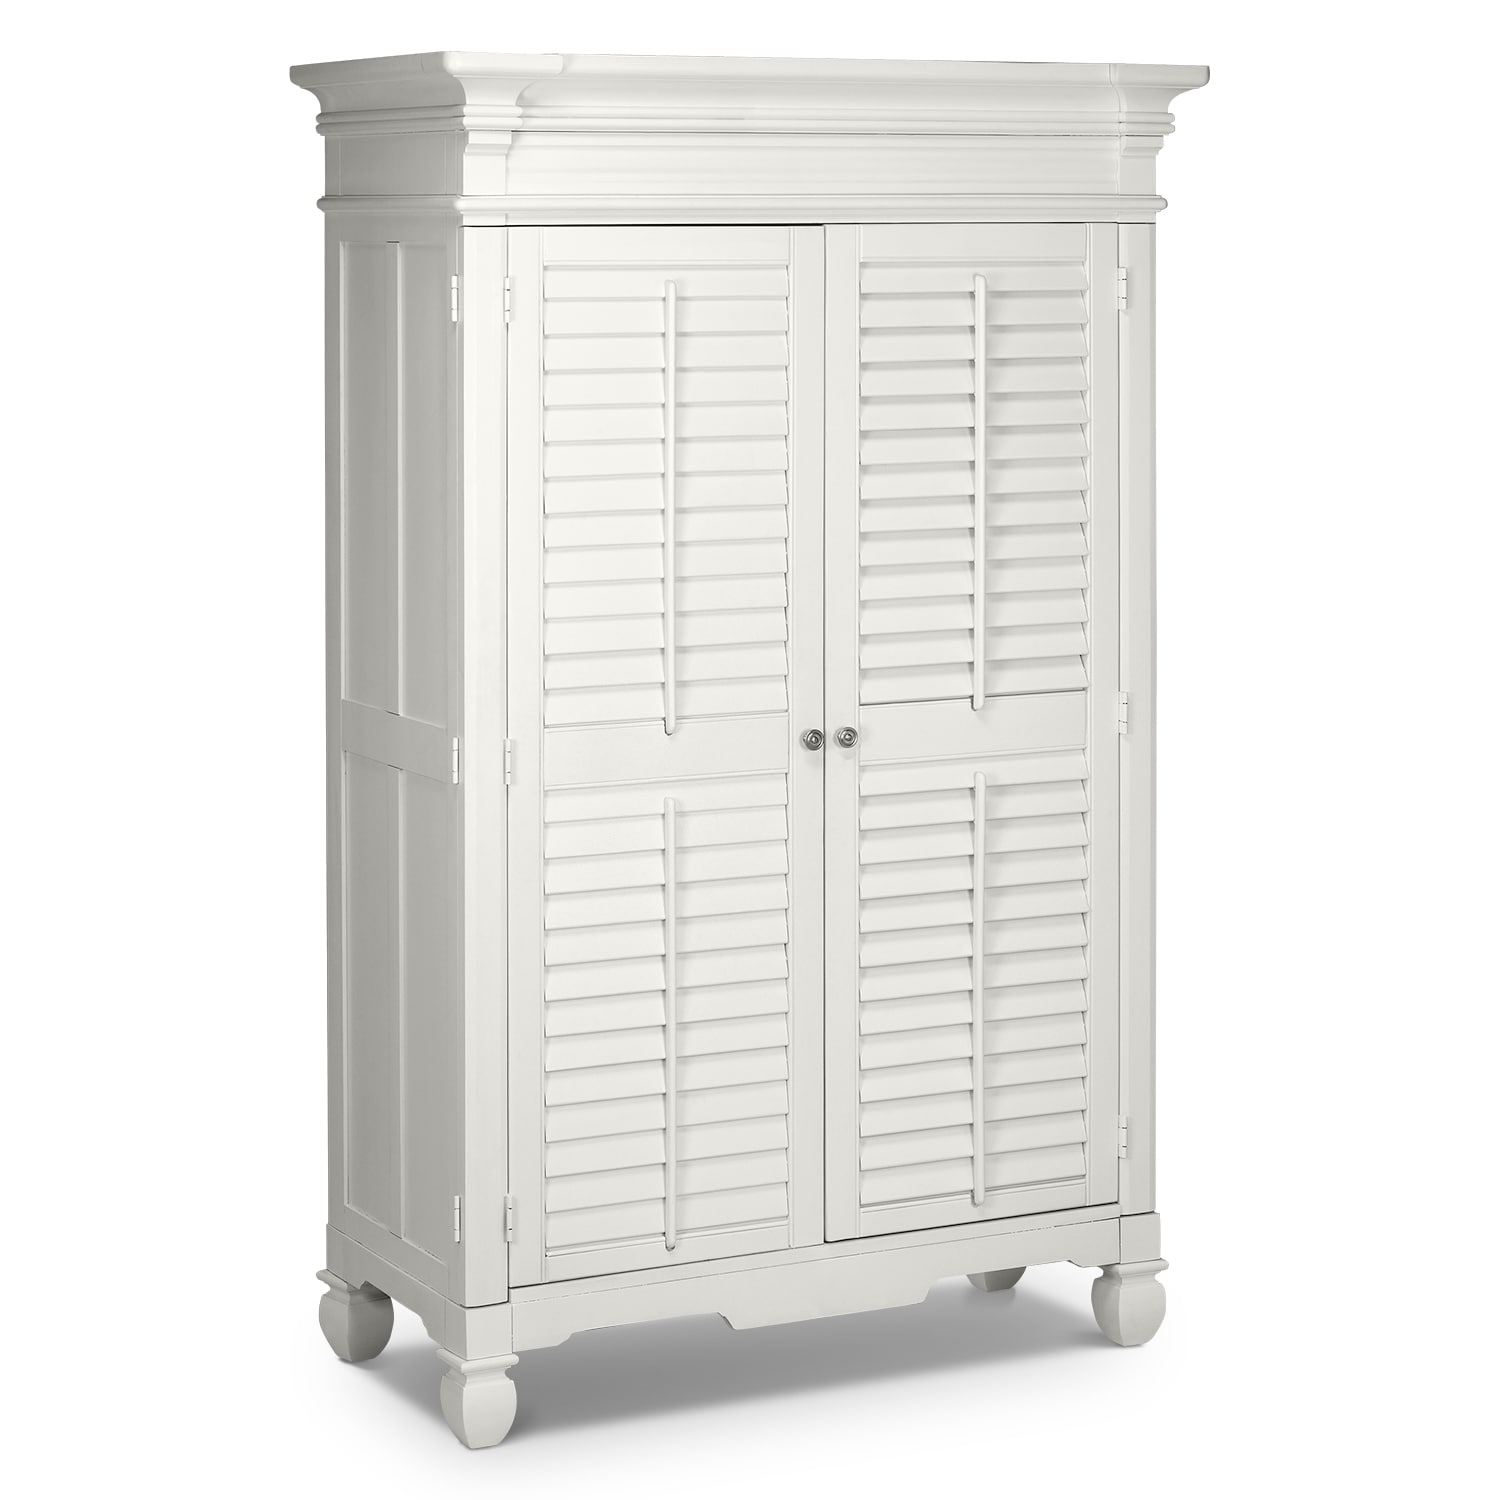 Bedroom Furniture-Magnolia White Armoire